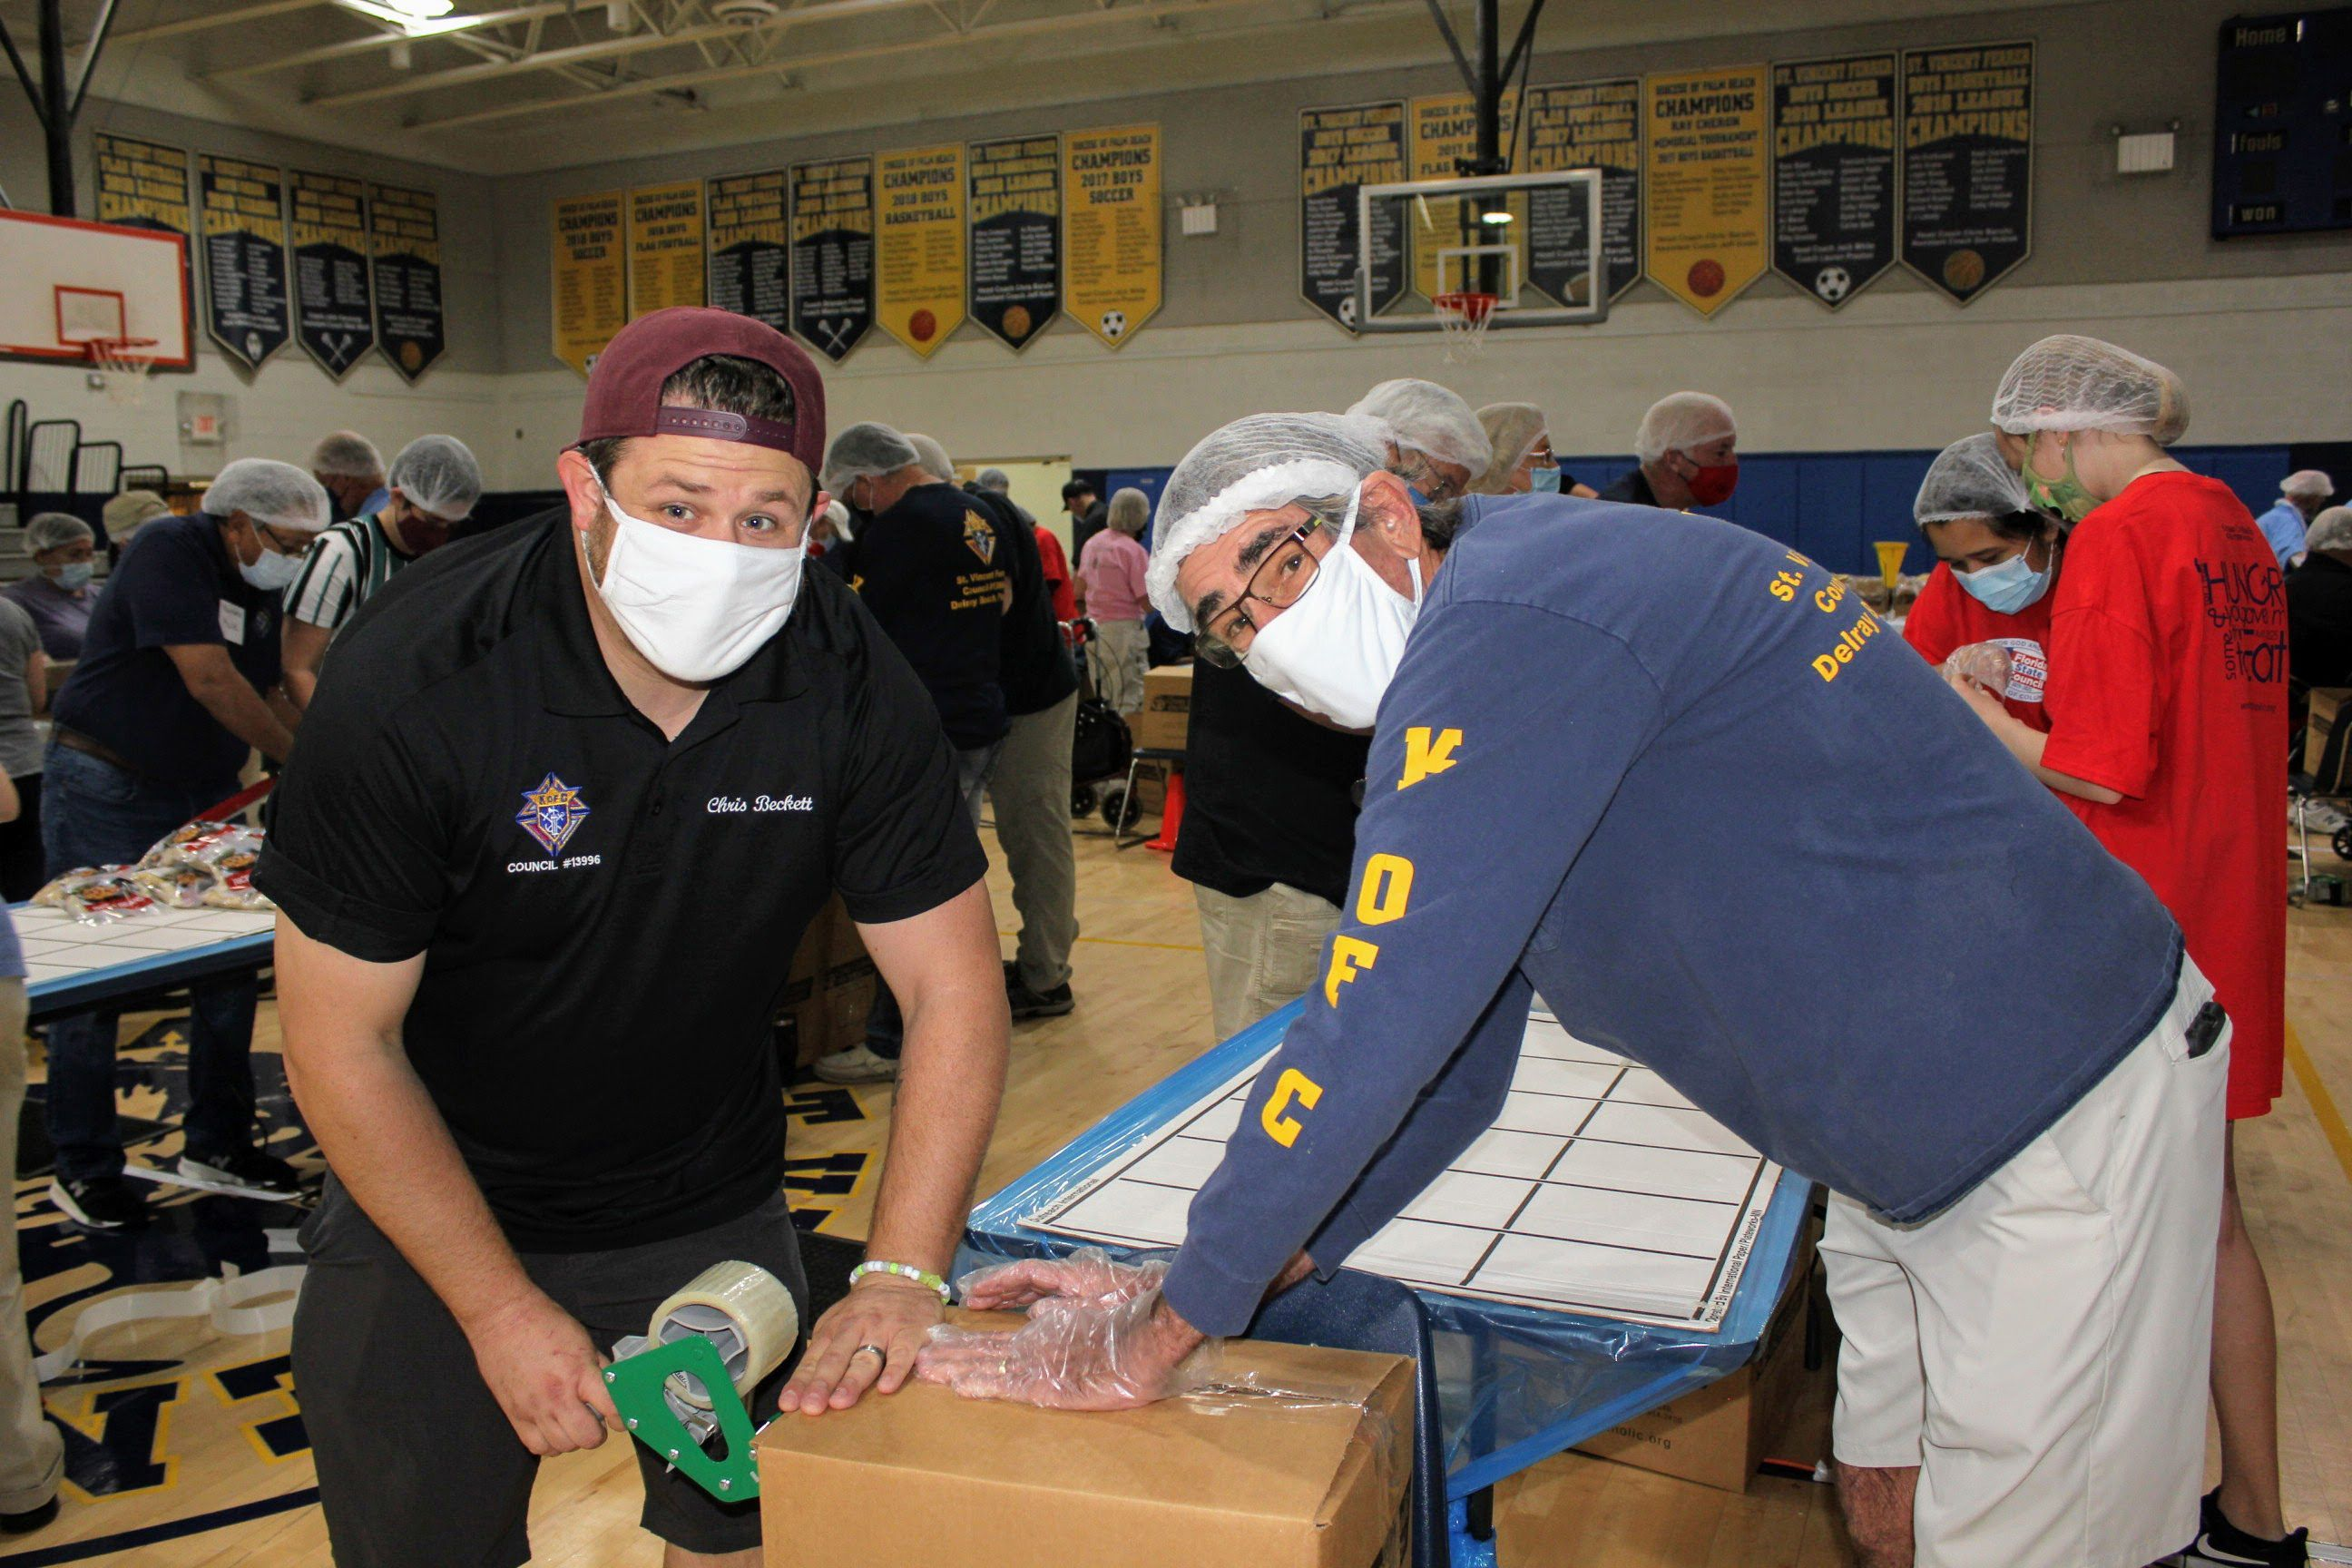 Knights pack more than 40,000 meals for hungry in Guatemala